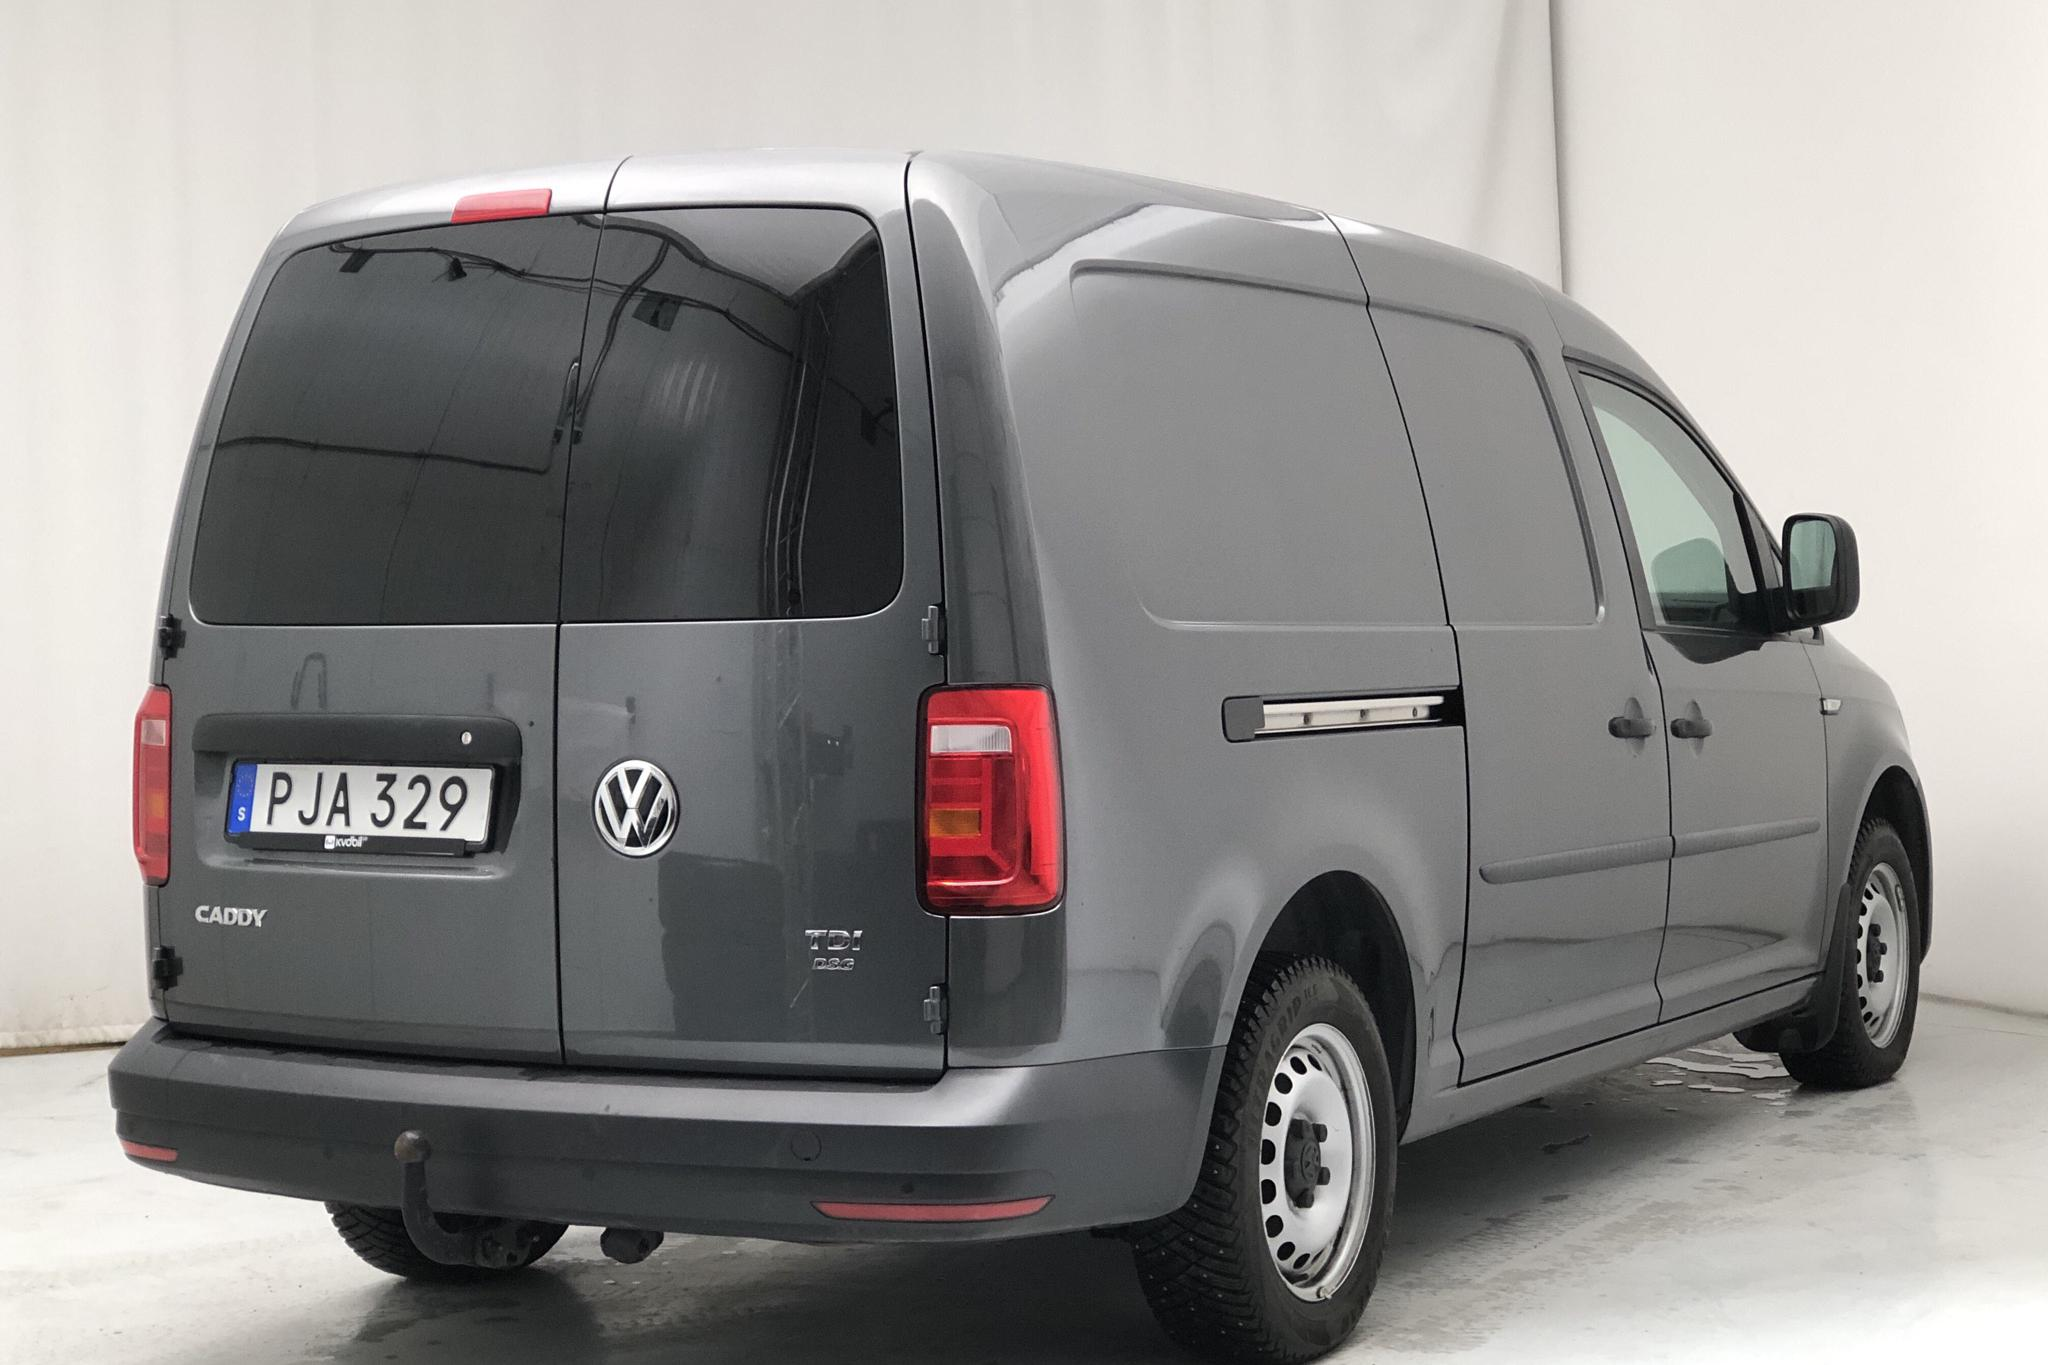 VW Caddy 2.0 TDI Maxi Skåp (102hk) - 5 621 mil - Automat - Light Grey - 2017